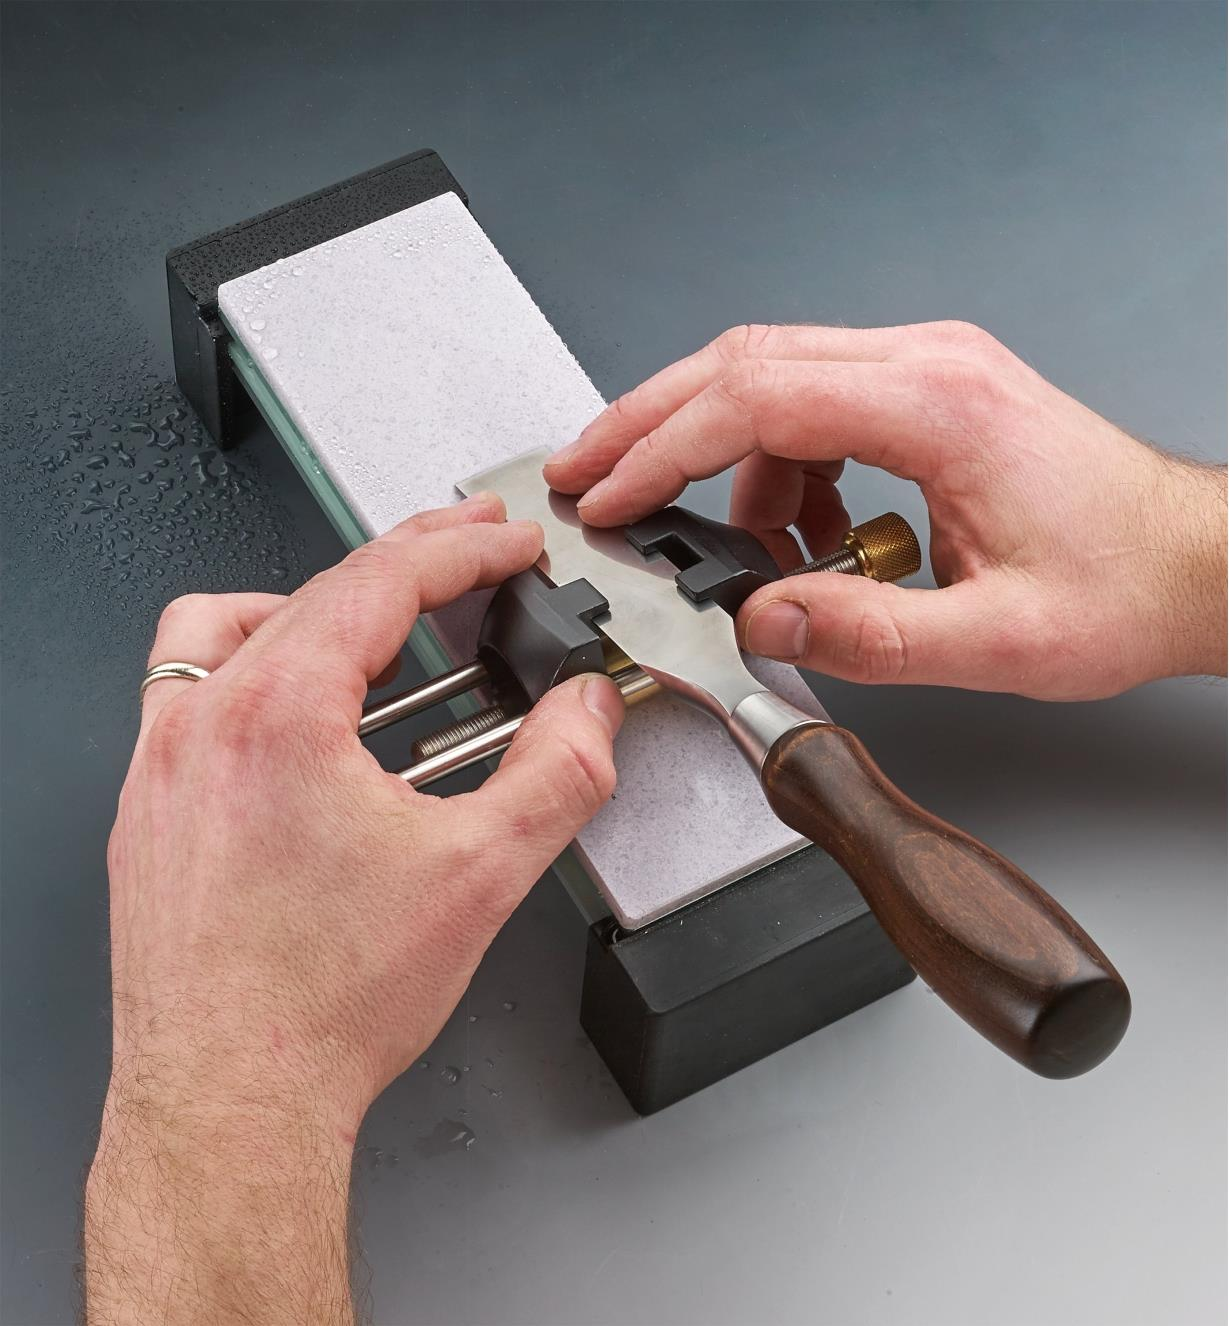 Sharpening a chisel on a glass stone held in a field holder